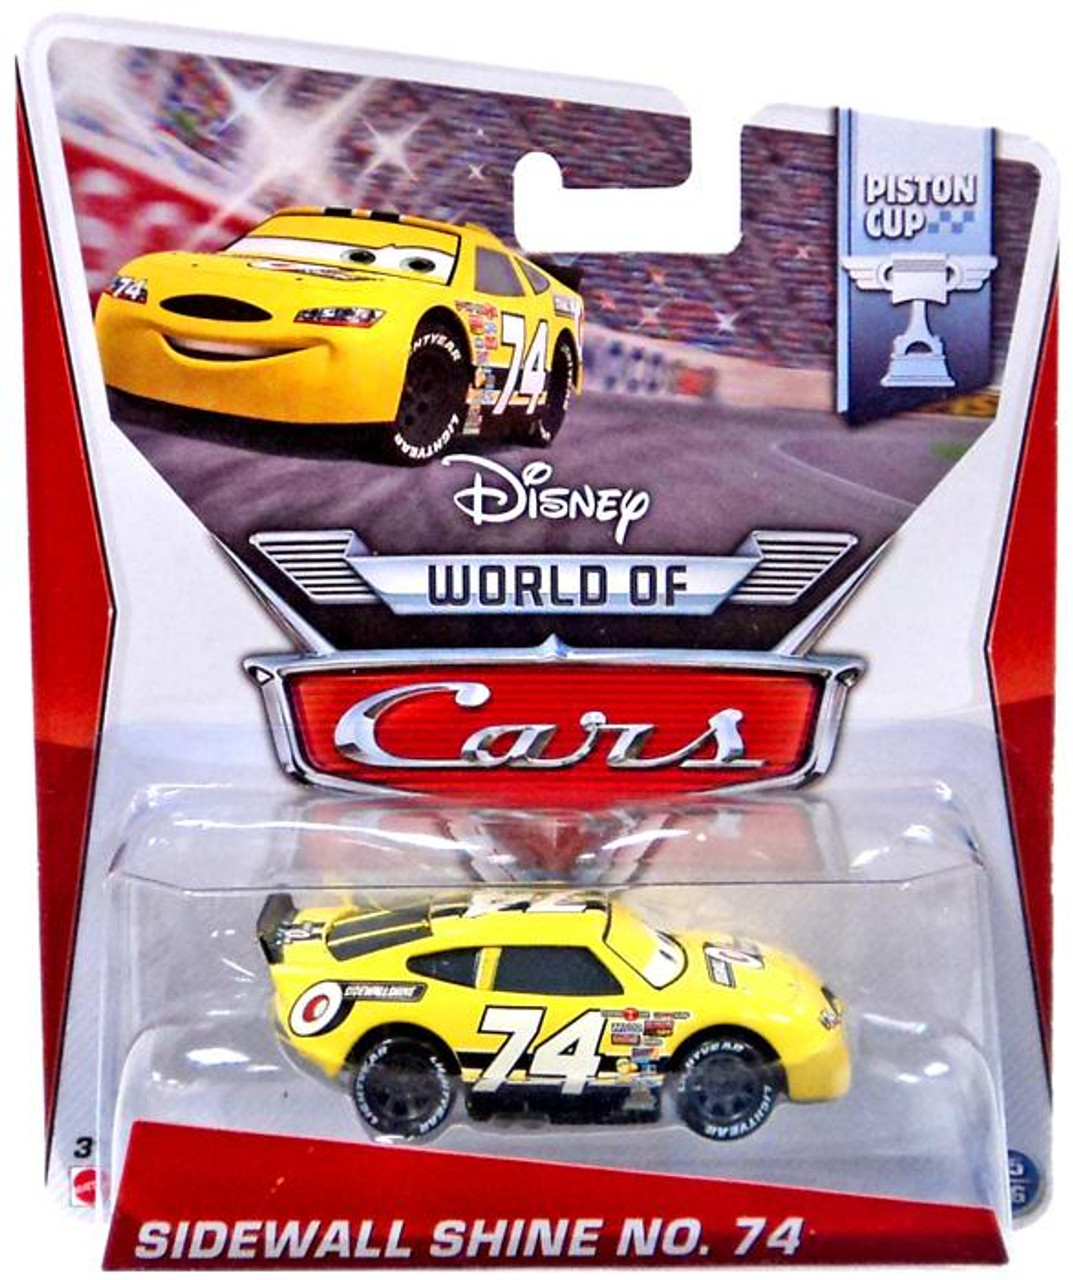 Disney Cars The World of Cars Sidewall Shine No. 74 Diecast Car #15